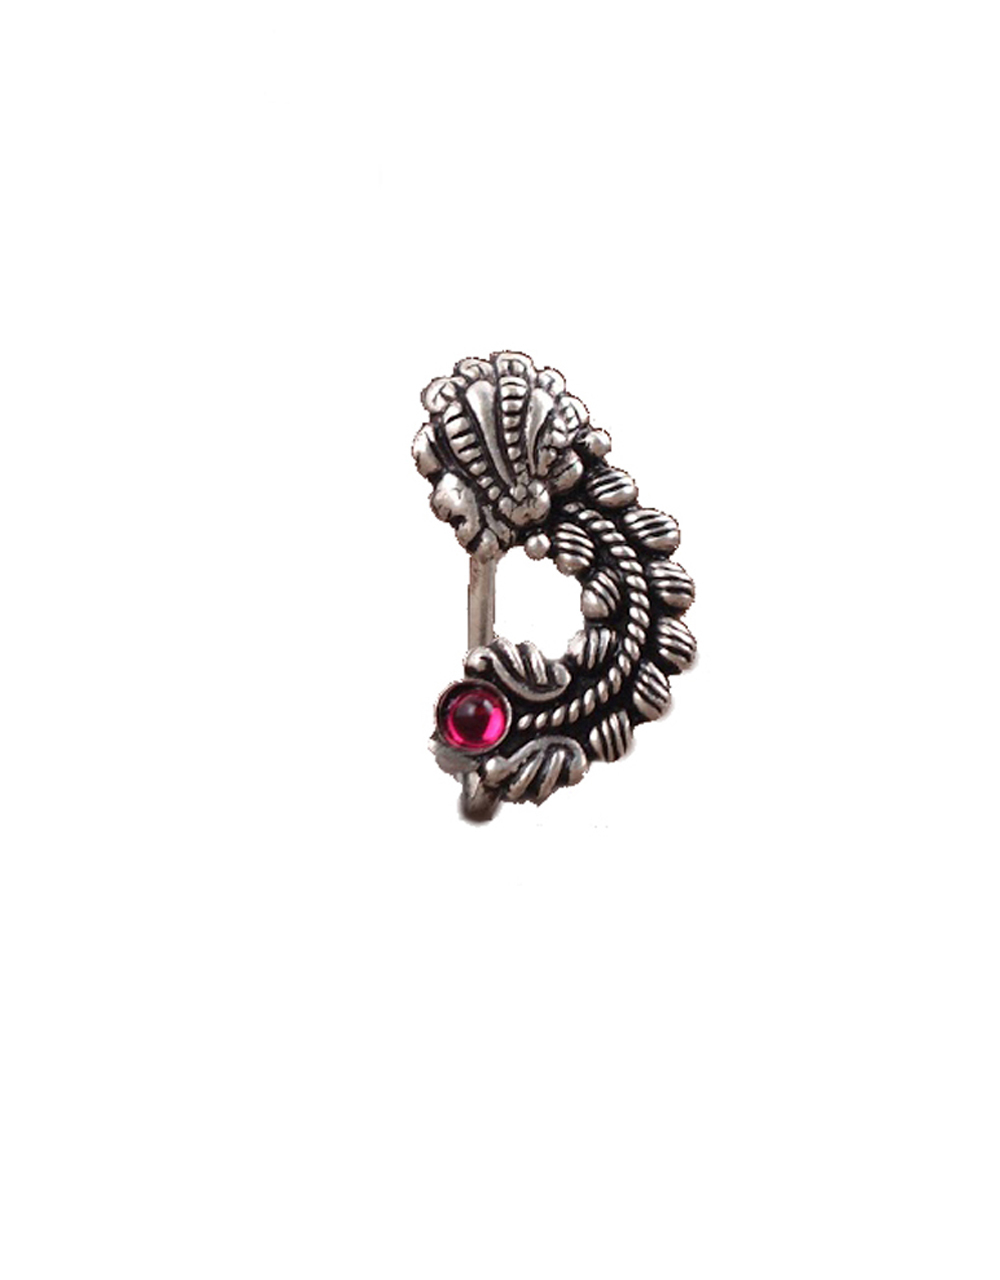 Silver Finish Something New & Classy Oxidized Nath   Press On Nath   Clip-On Nath For Women